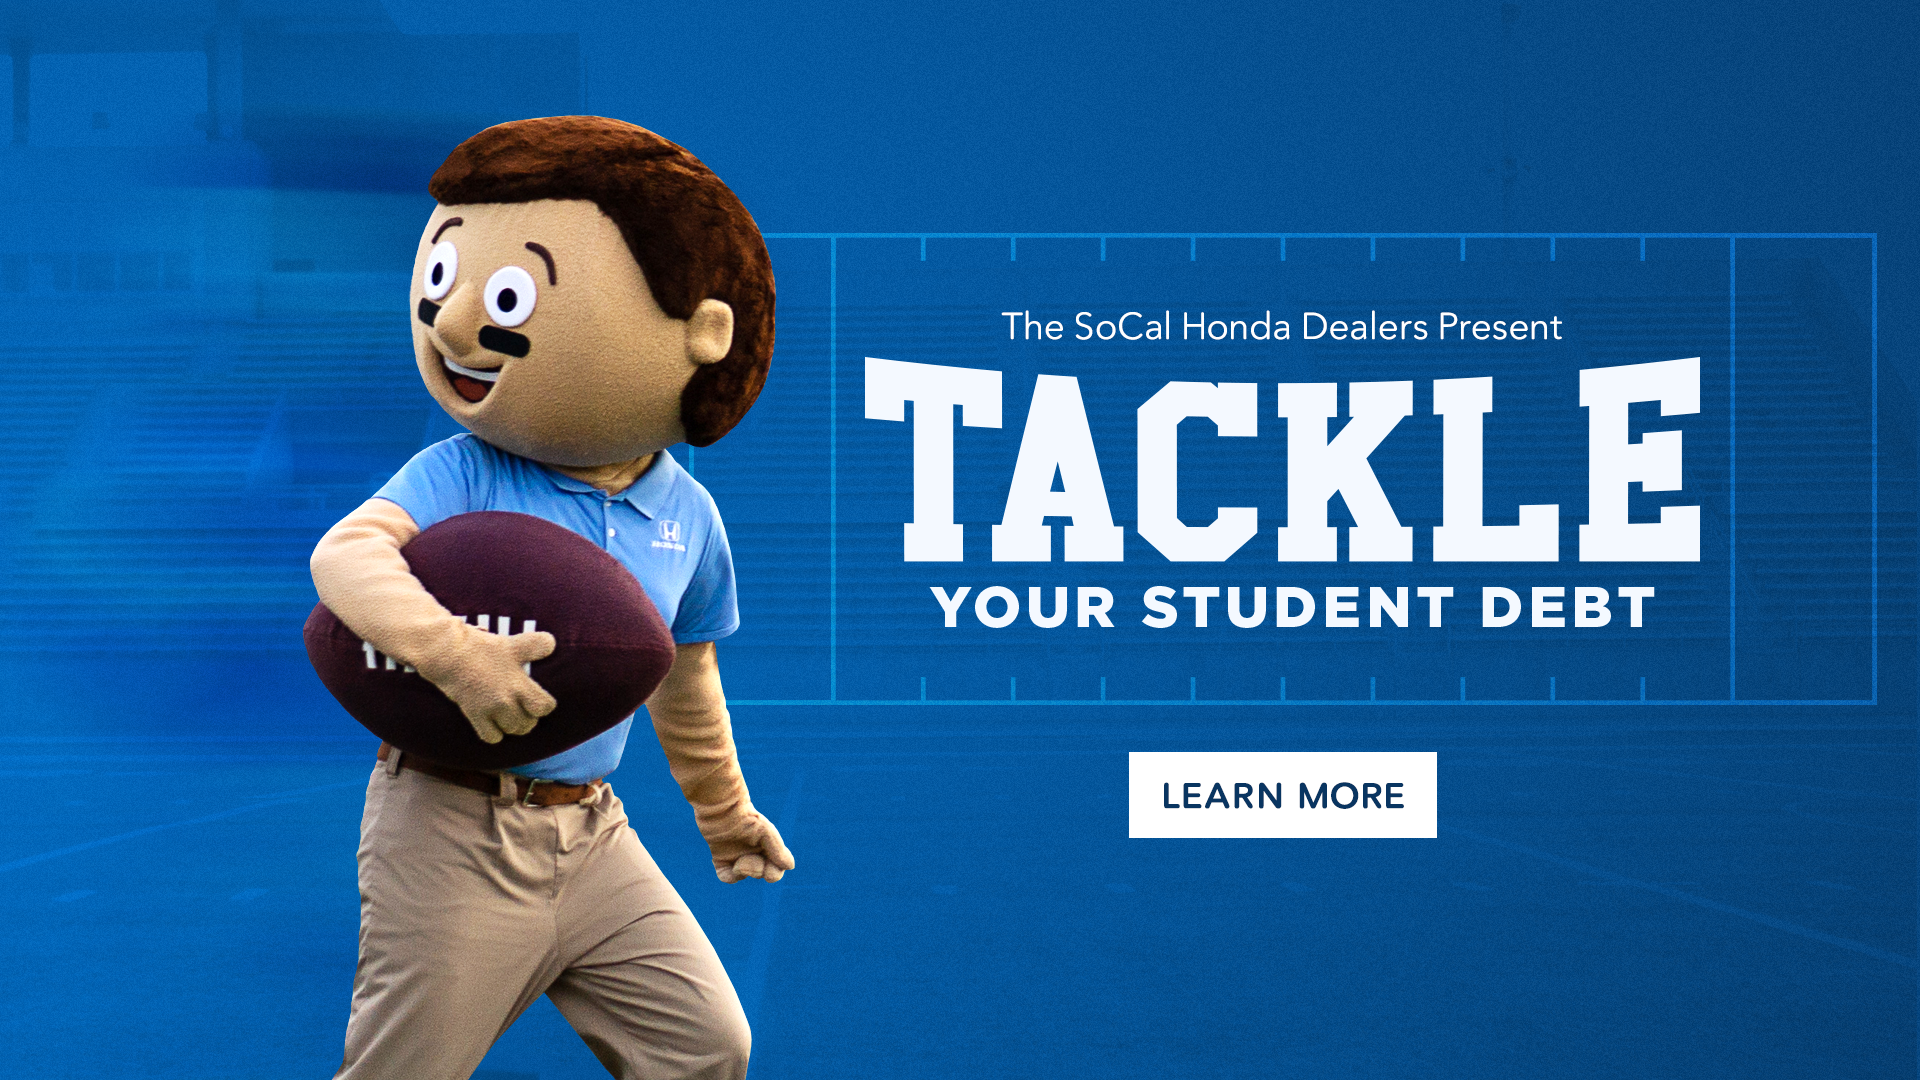 Tackle Your Student Debt